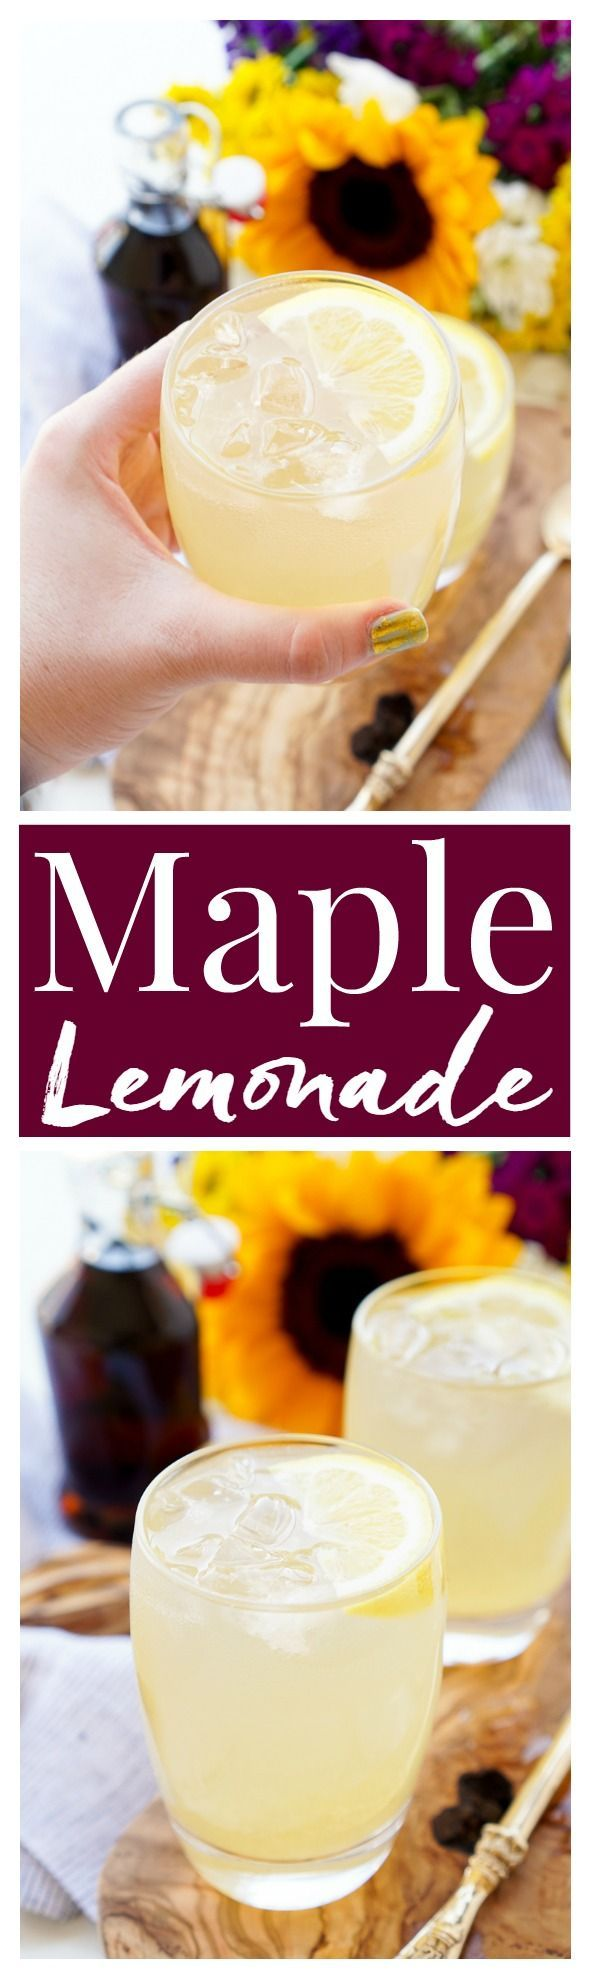 This Maple Lemonade is inspired by Maine and made with just lemon ...